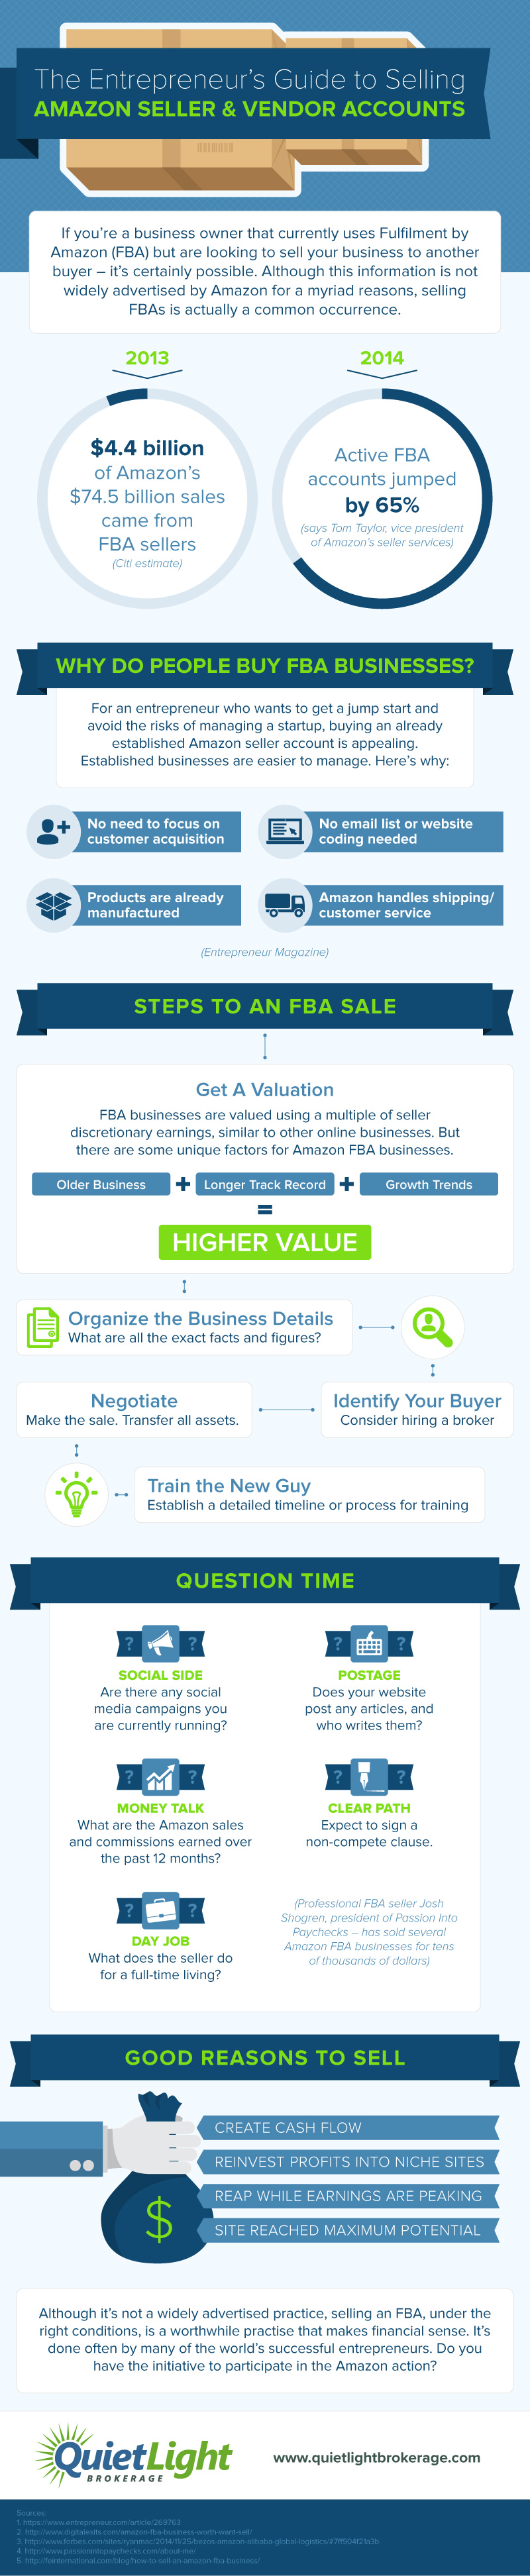 Selling-an-Amazon-Business-infographic-plaza